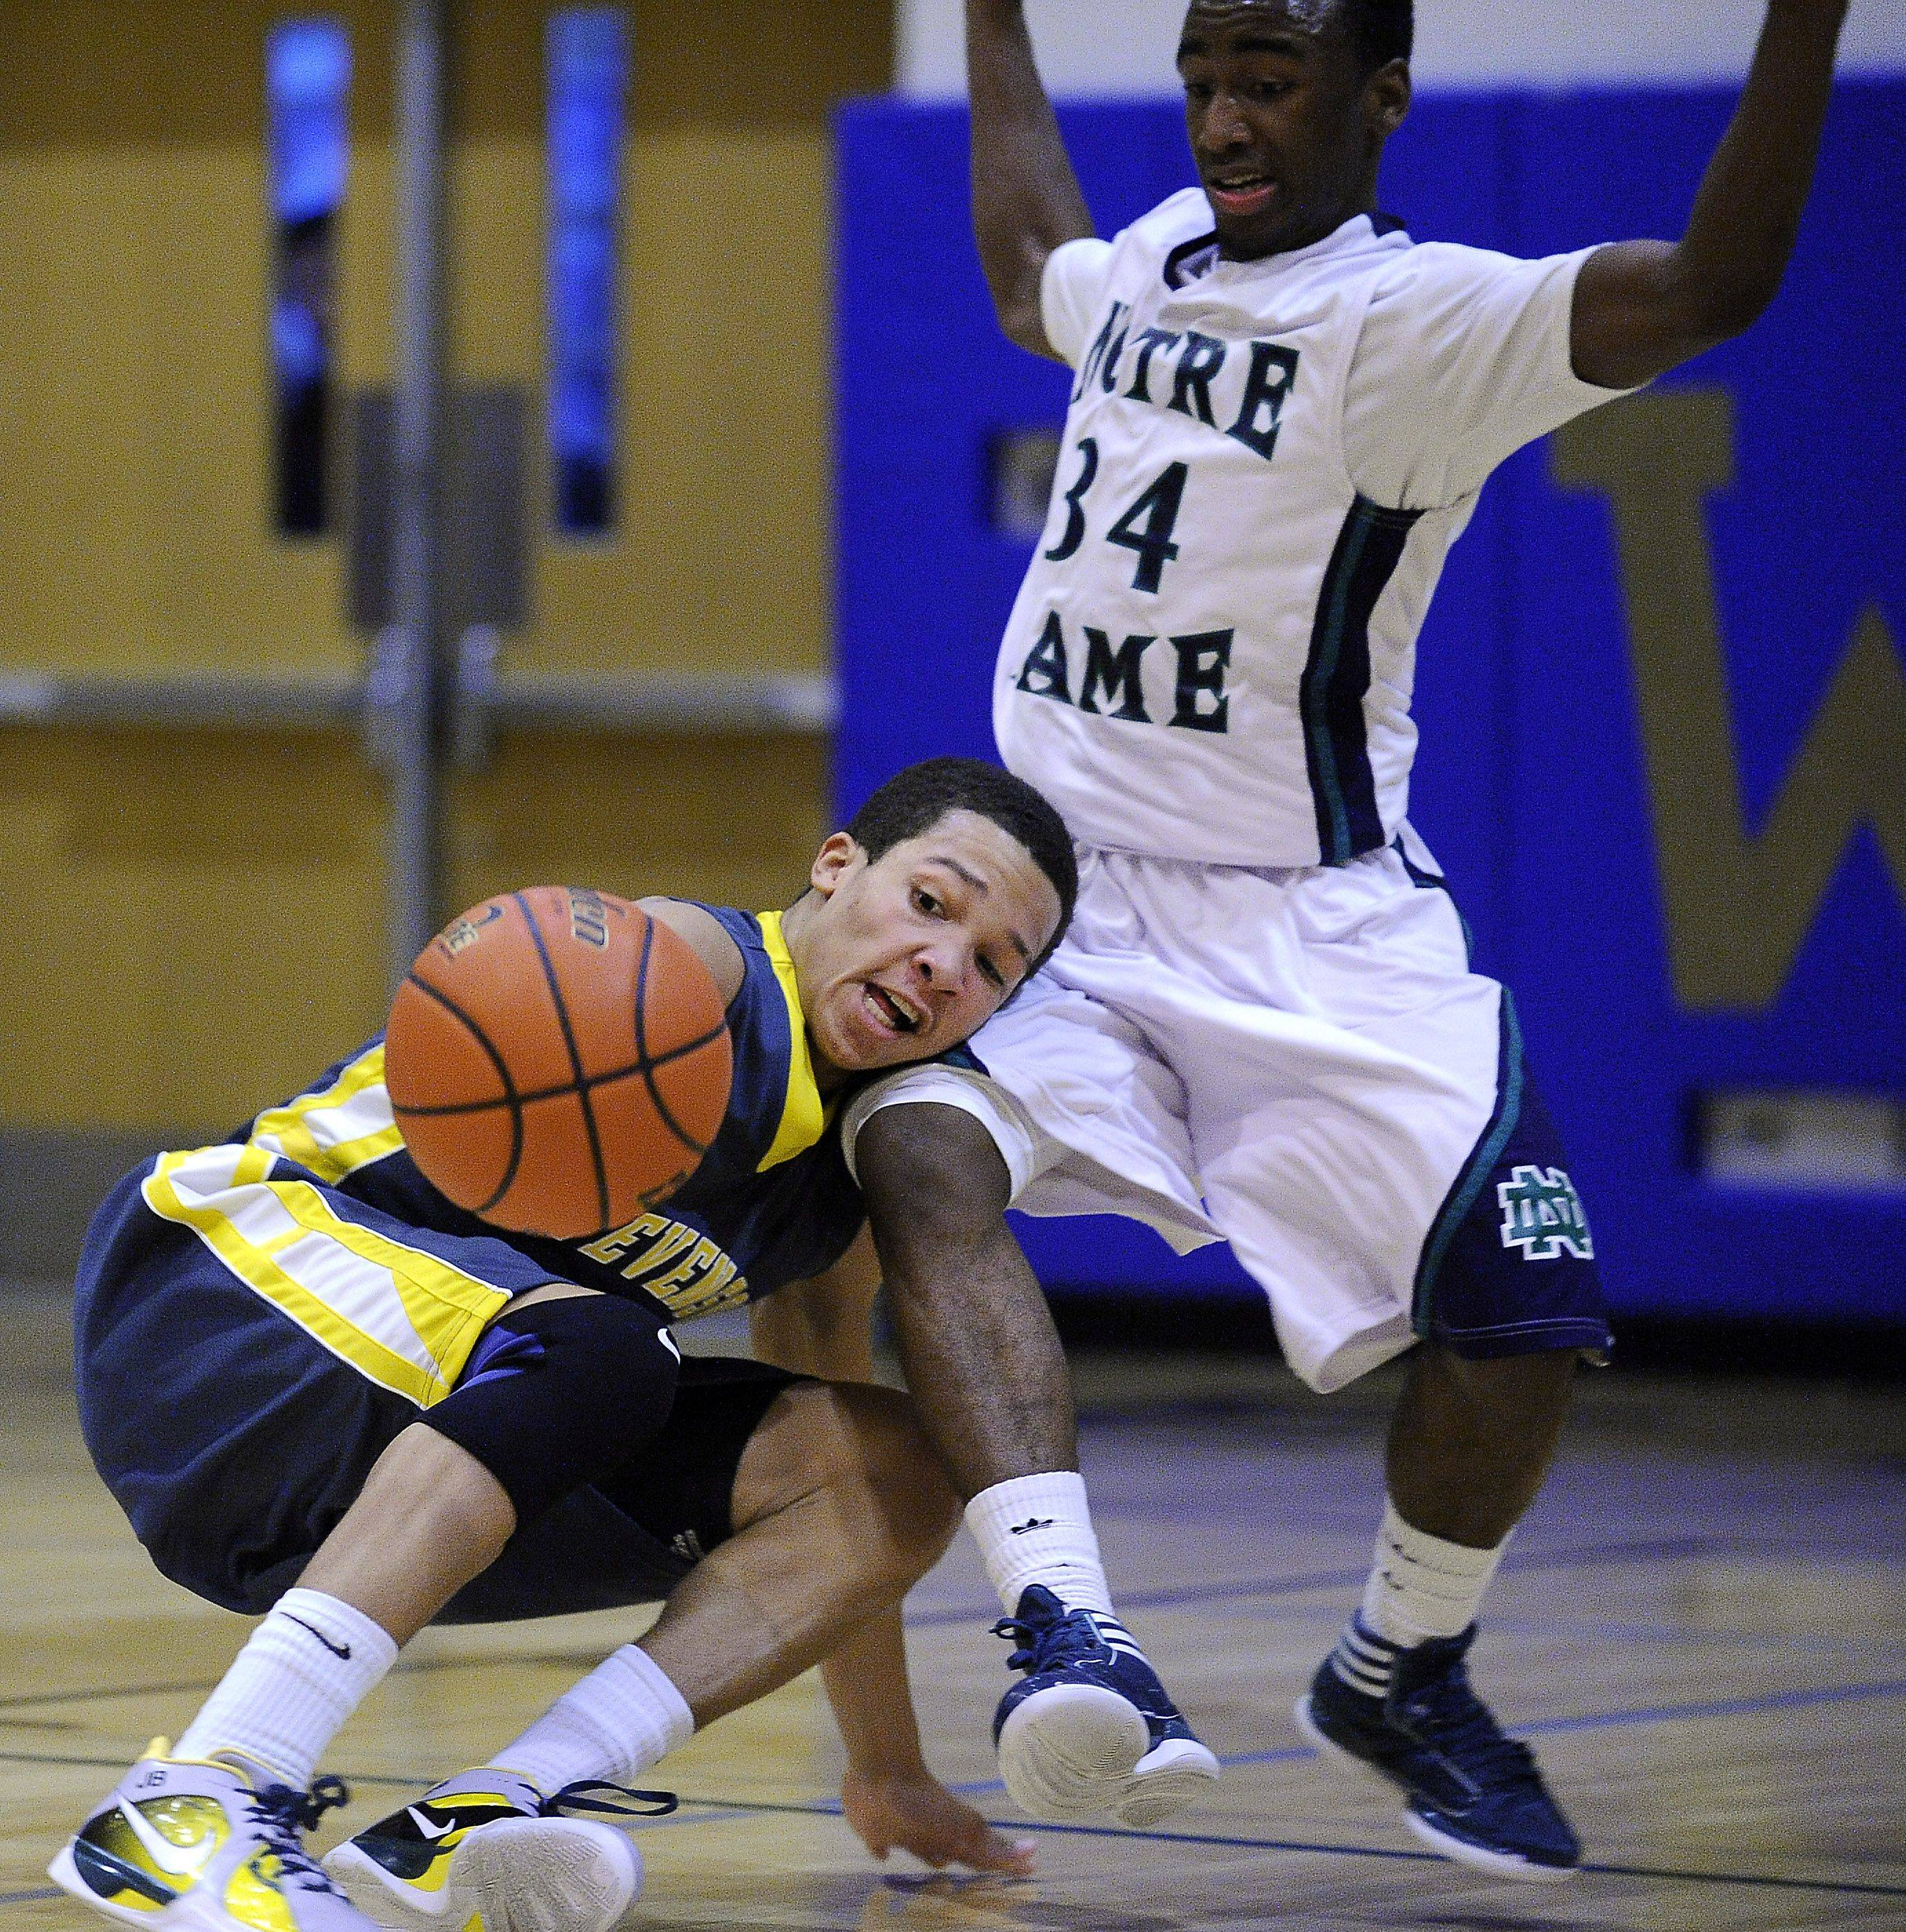 Stevenson's Jalen Brunson collides with Notre Dame's Donte Stephenson in the second quarter and the ball is scooped up by Stephenson in tournament semifinal play Thursday at Wheeling.